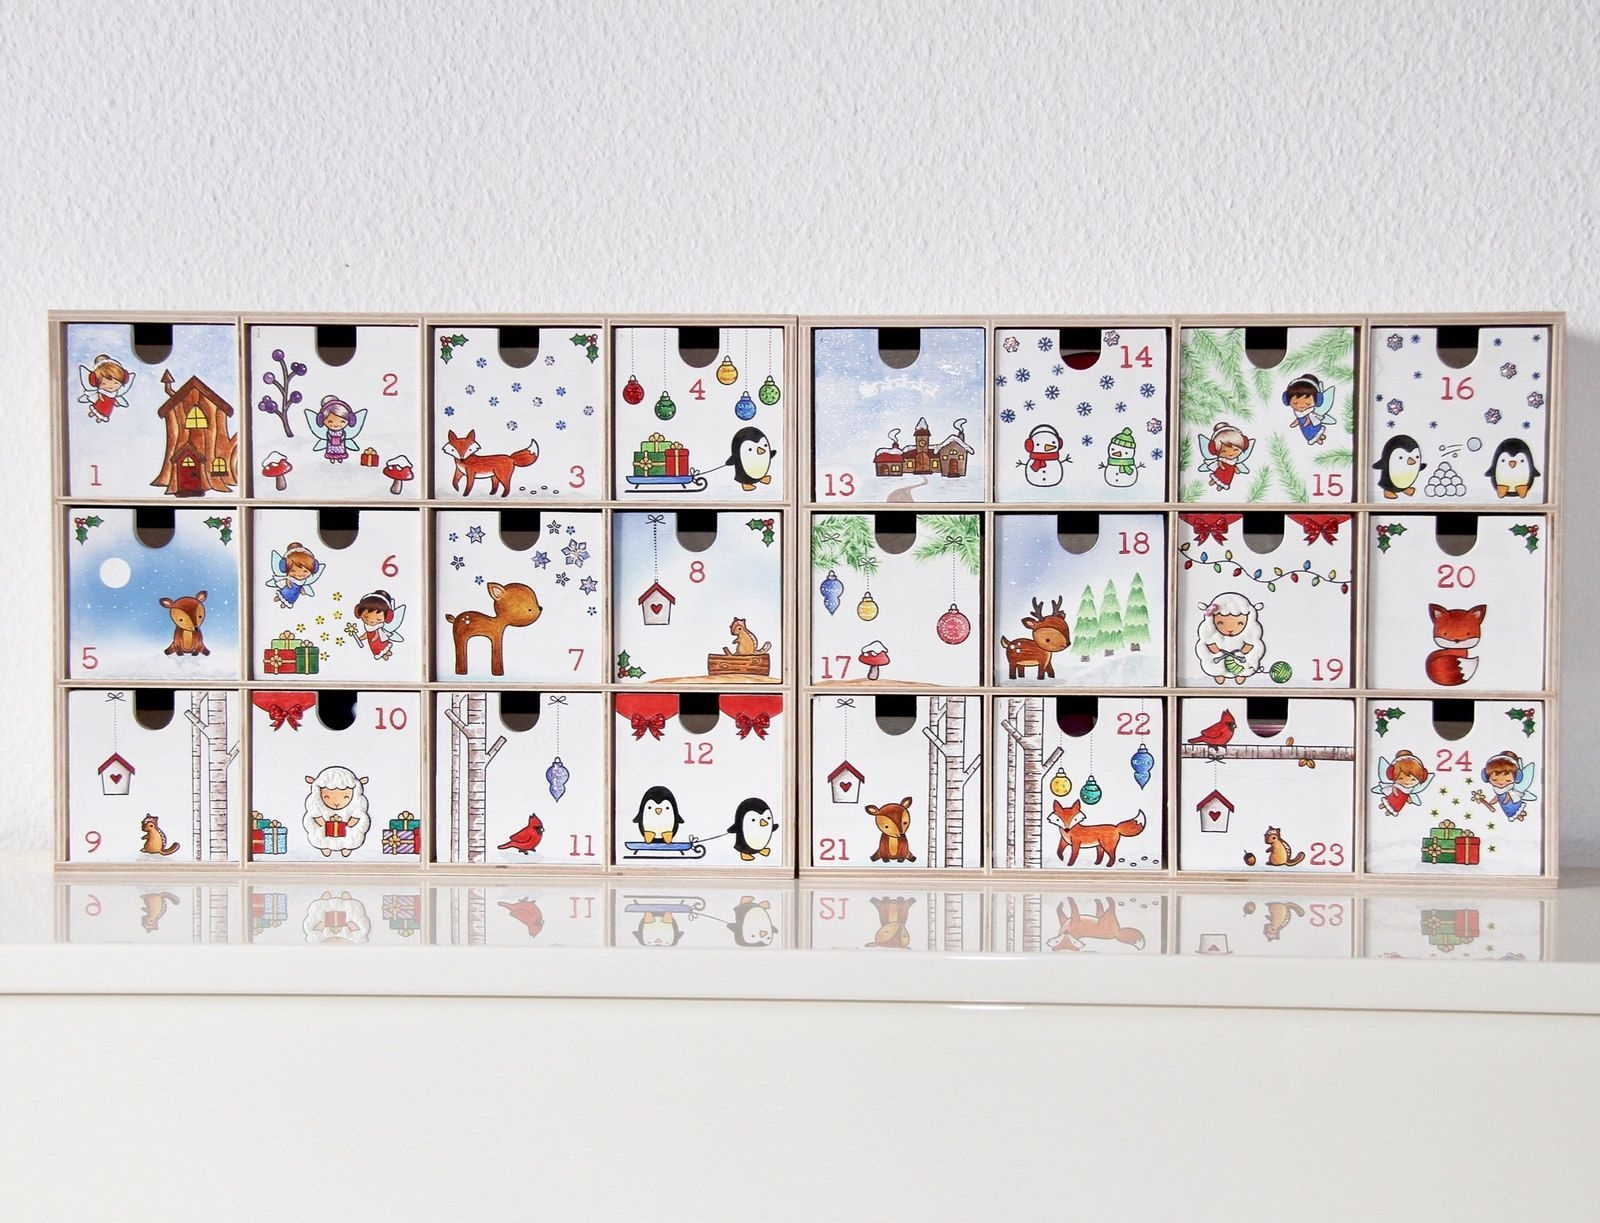 Advent Calendar With Ikea Moppe Shelfs/Drawers, Painted With